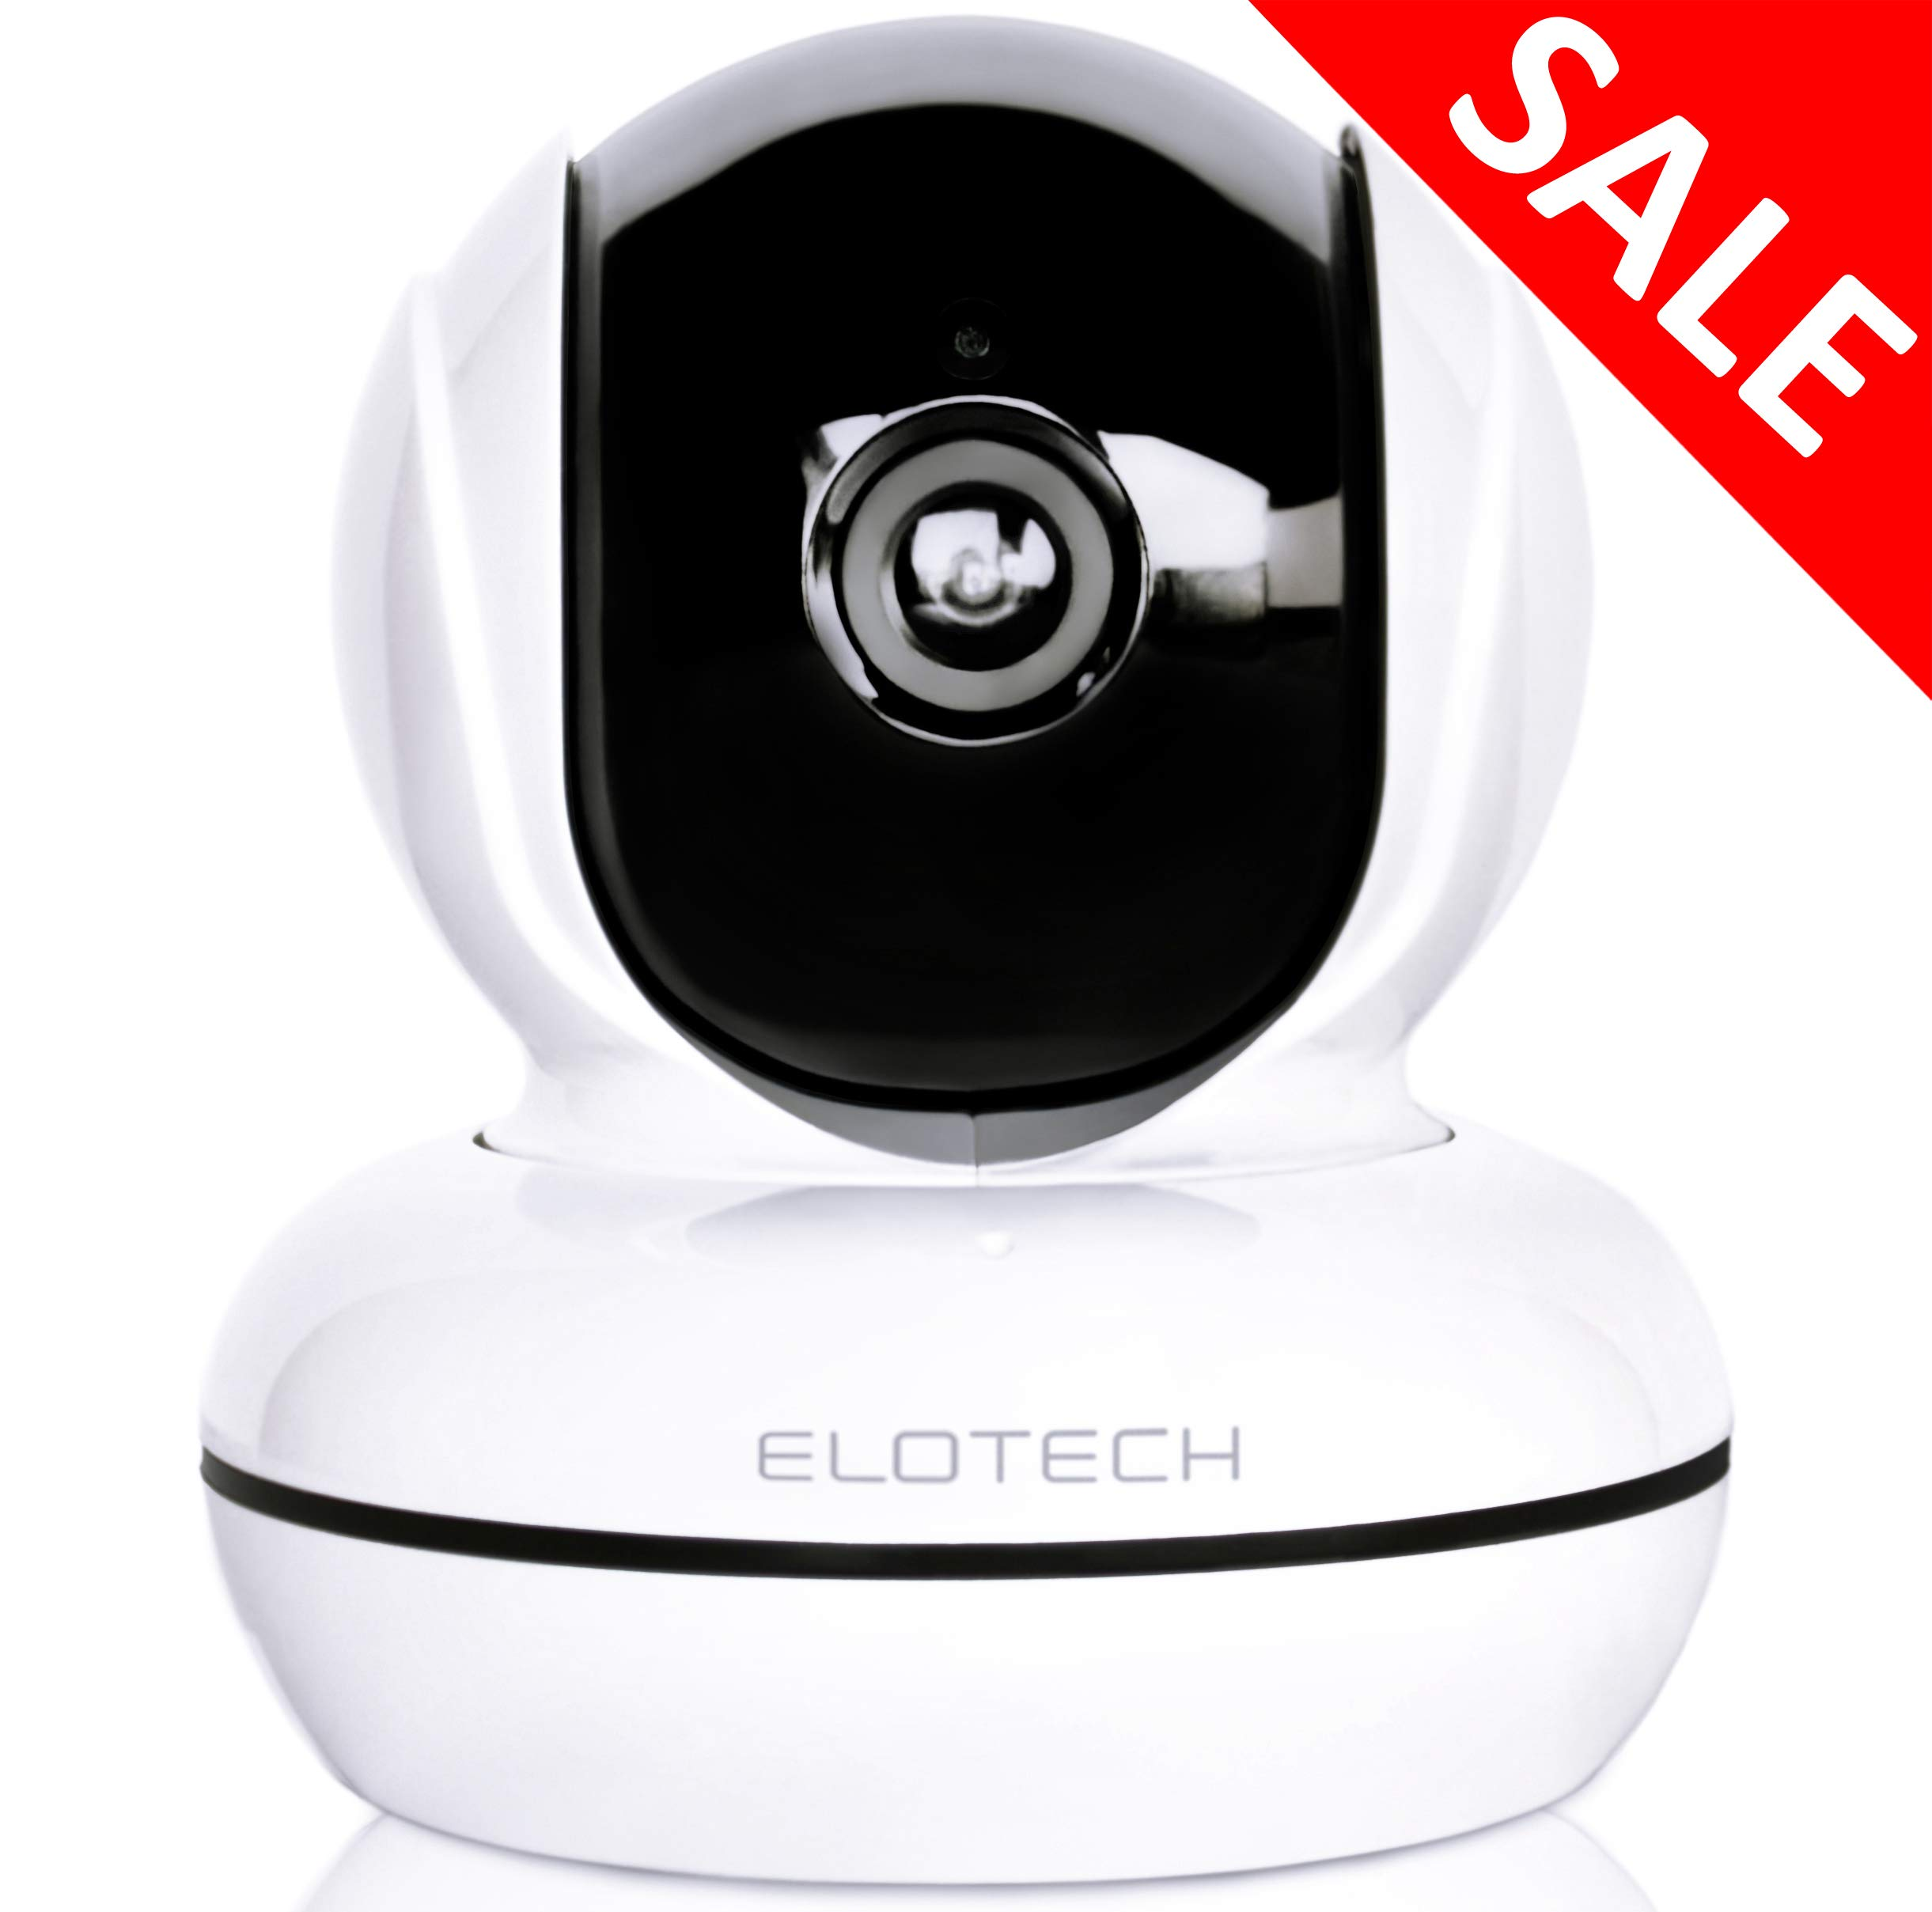 ELOTECH Home Security IP Camera 1080p HD, Wireless Wifi Smart Indoor Camera with Night Vision, Two Way Audio, Motion Sensor, Pan/Tilt, SD Card Slot for Baby, Kids, Pet, Nanny Monitoring by ELOTECH